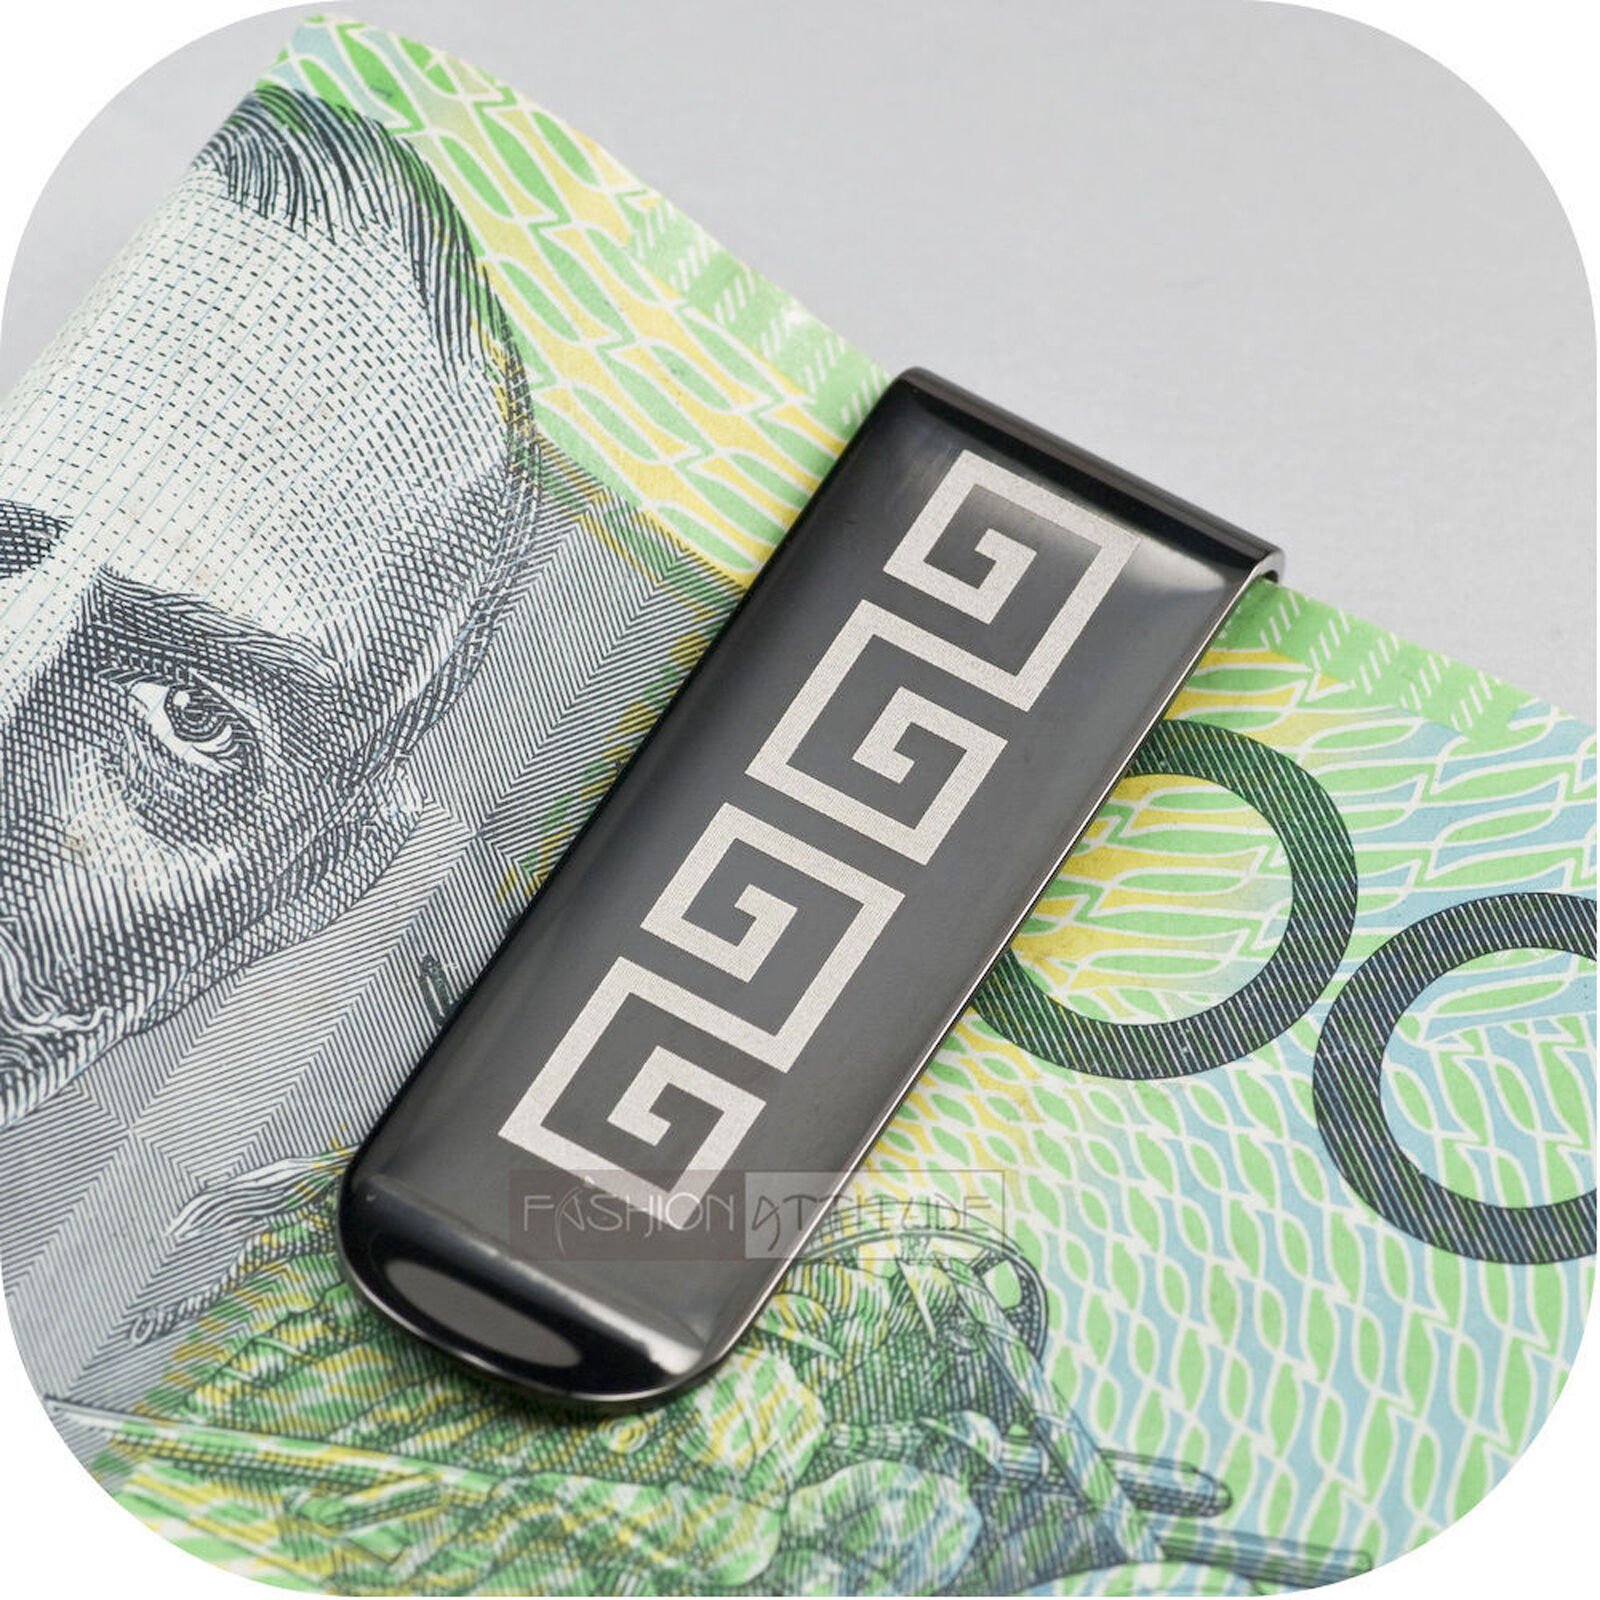 Solid stainless steel money clip black Polished Brushed sydney stock